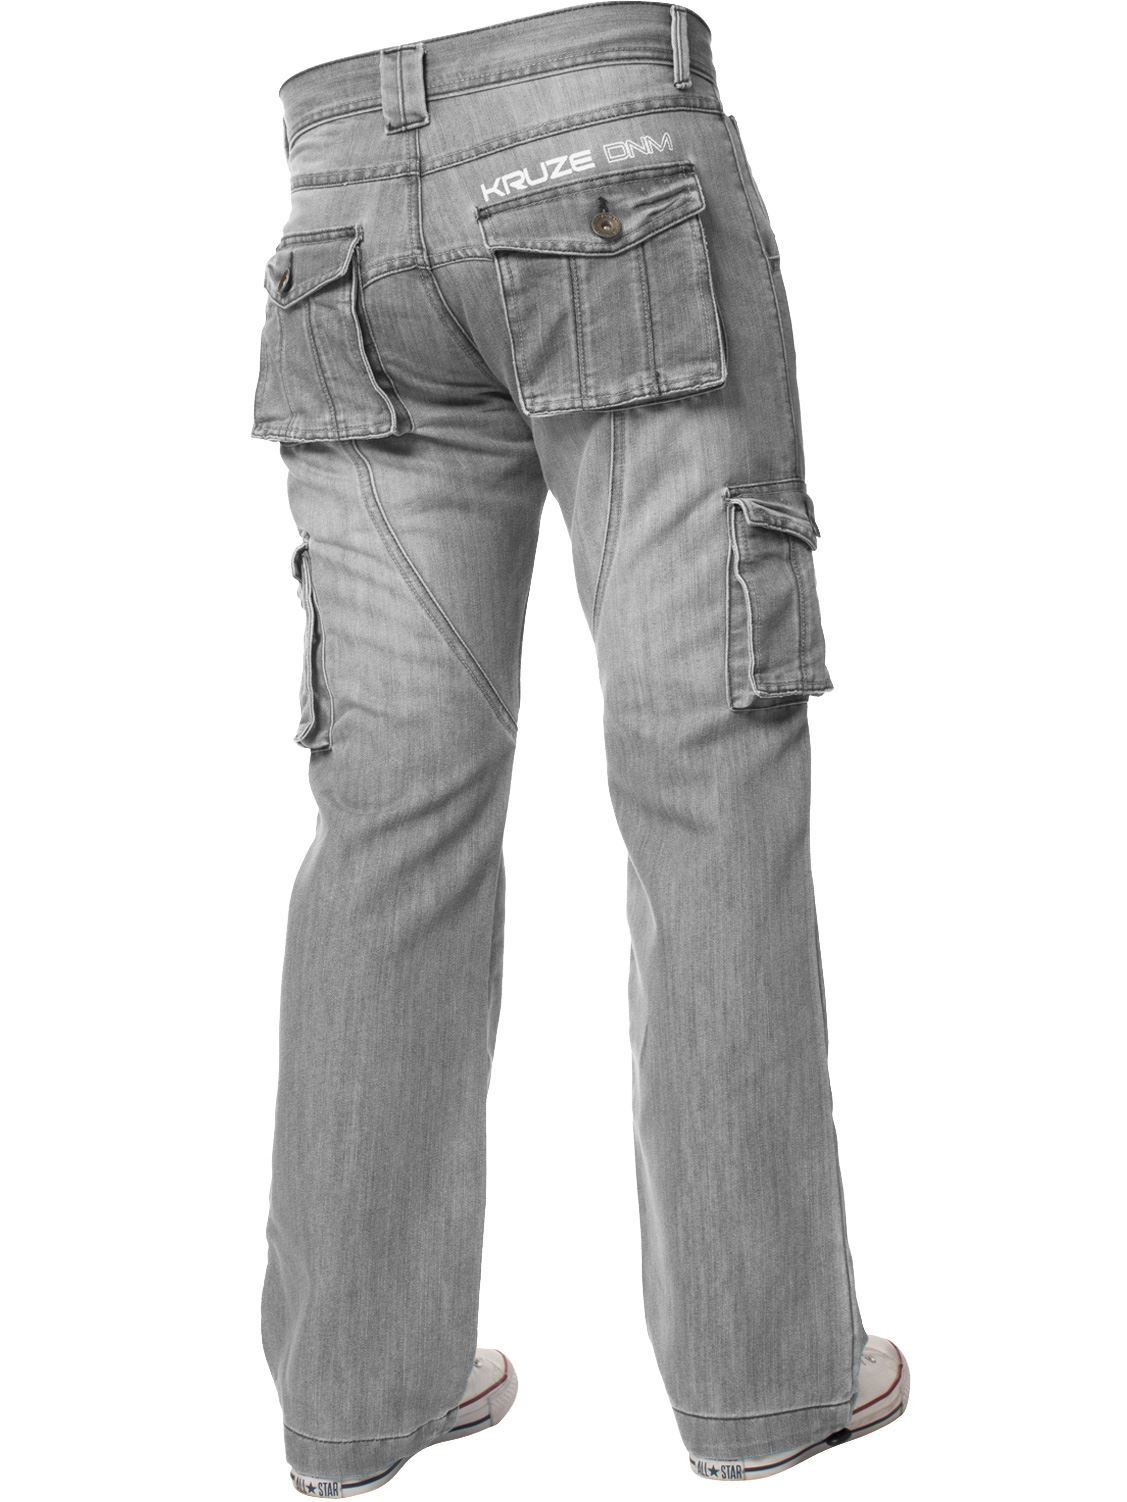 KRUZE-Mens-Combat-Jeans-Casual-Cargo-Work-Pants-Denim-Trousers-All-Waist-Sizes thumbnail 31